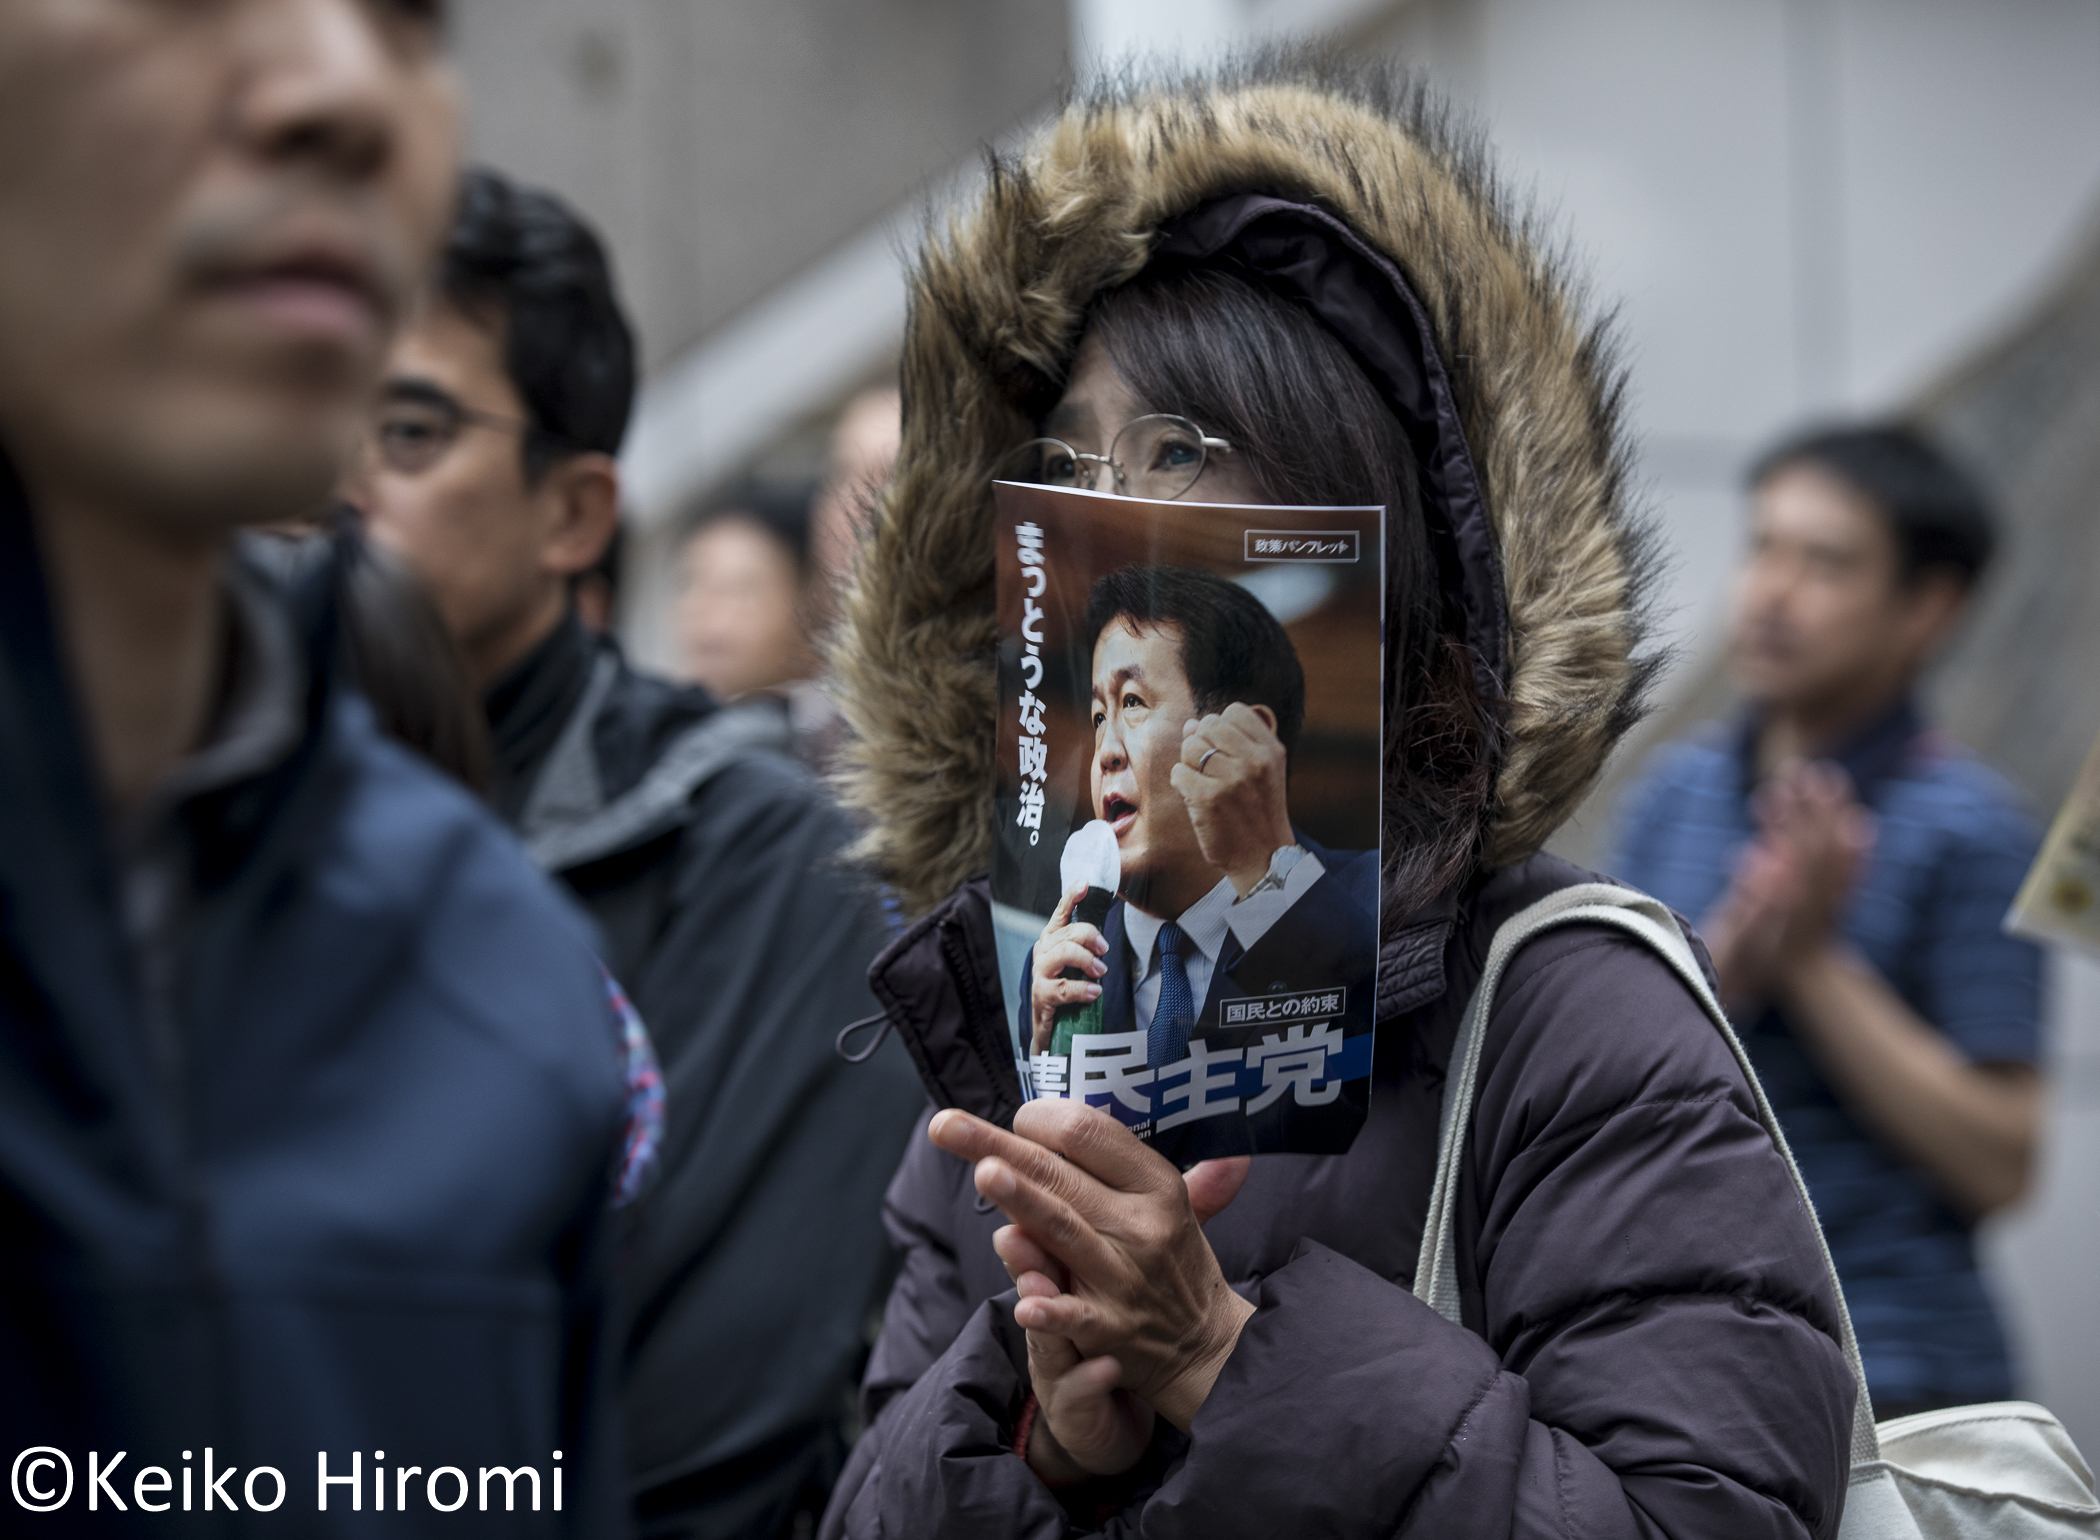 A supporter of Yukio Edano, leader of Constitutional Democratic Party in Shinjuku, Tokyo, Japan on October 14, 2017.